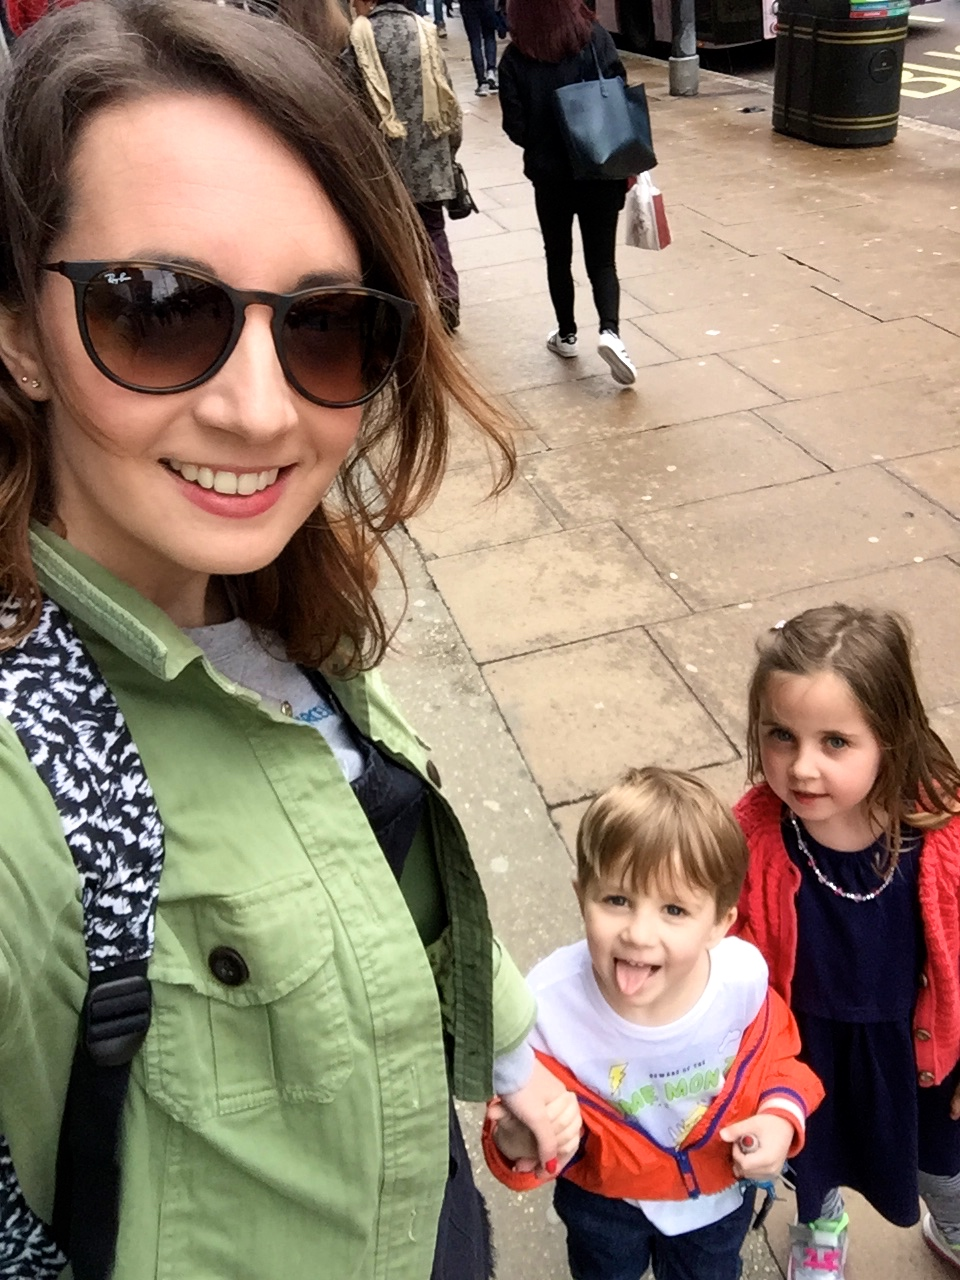 8 hours in london with kids